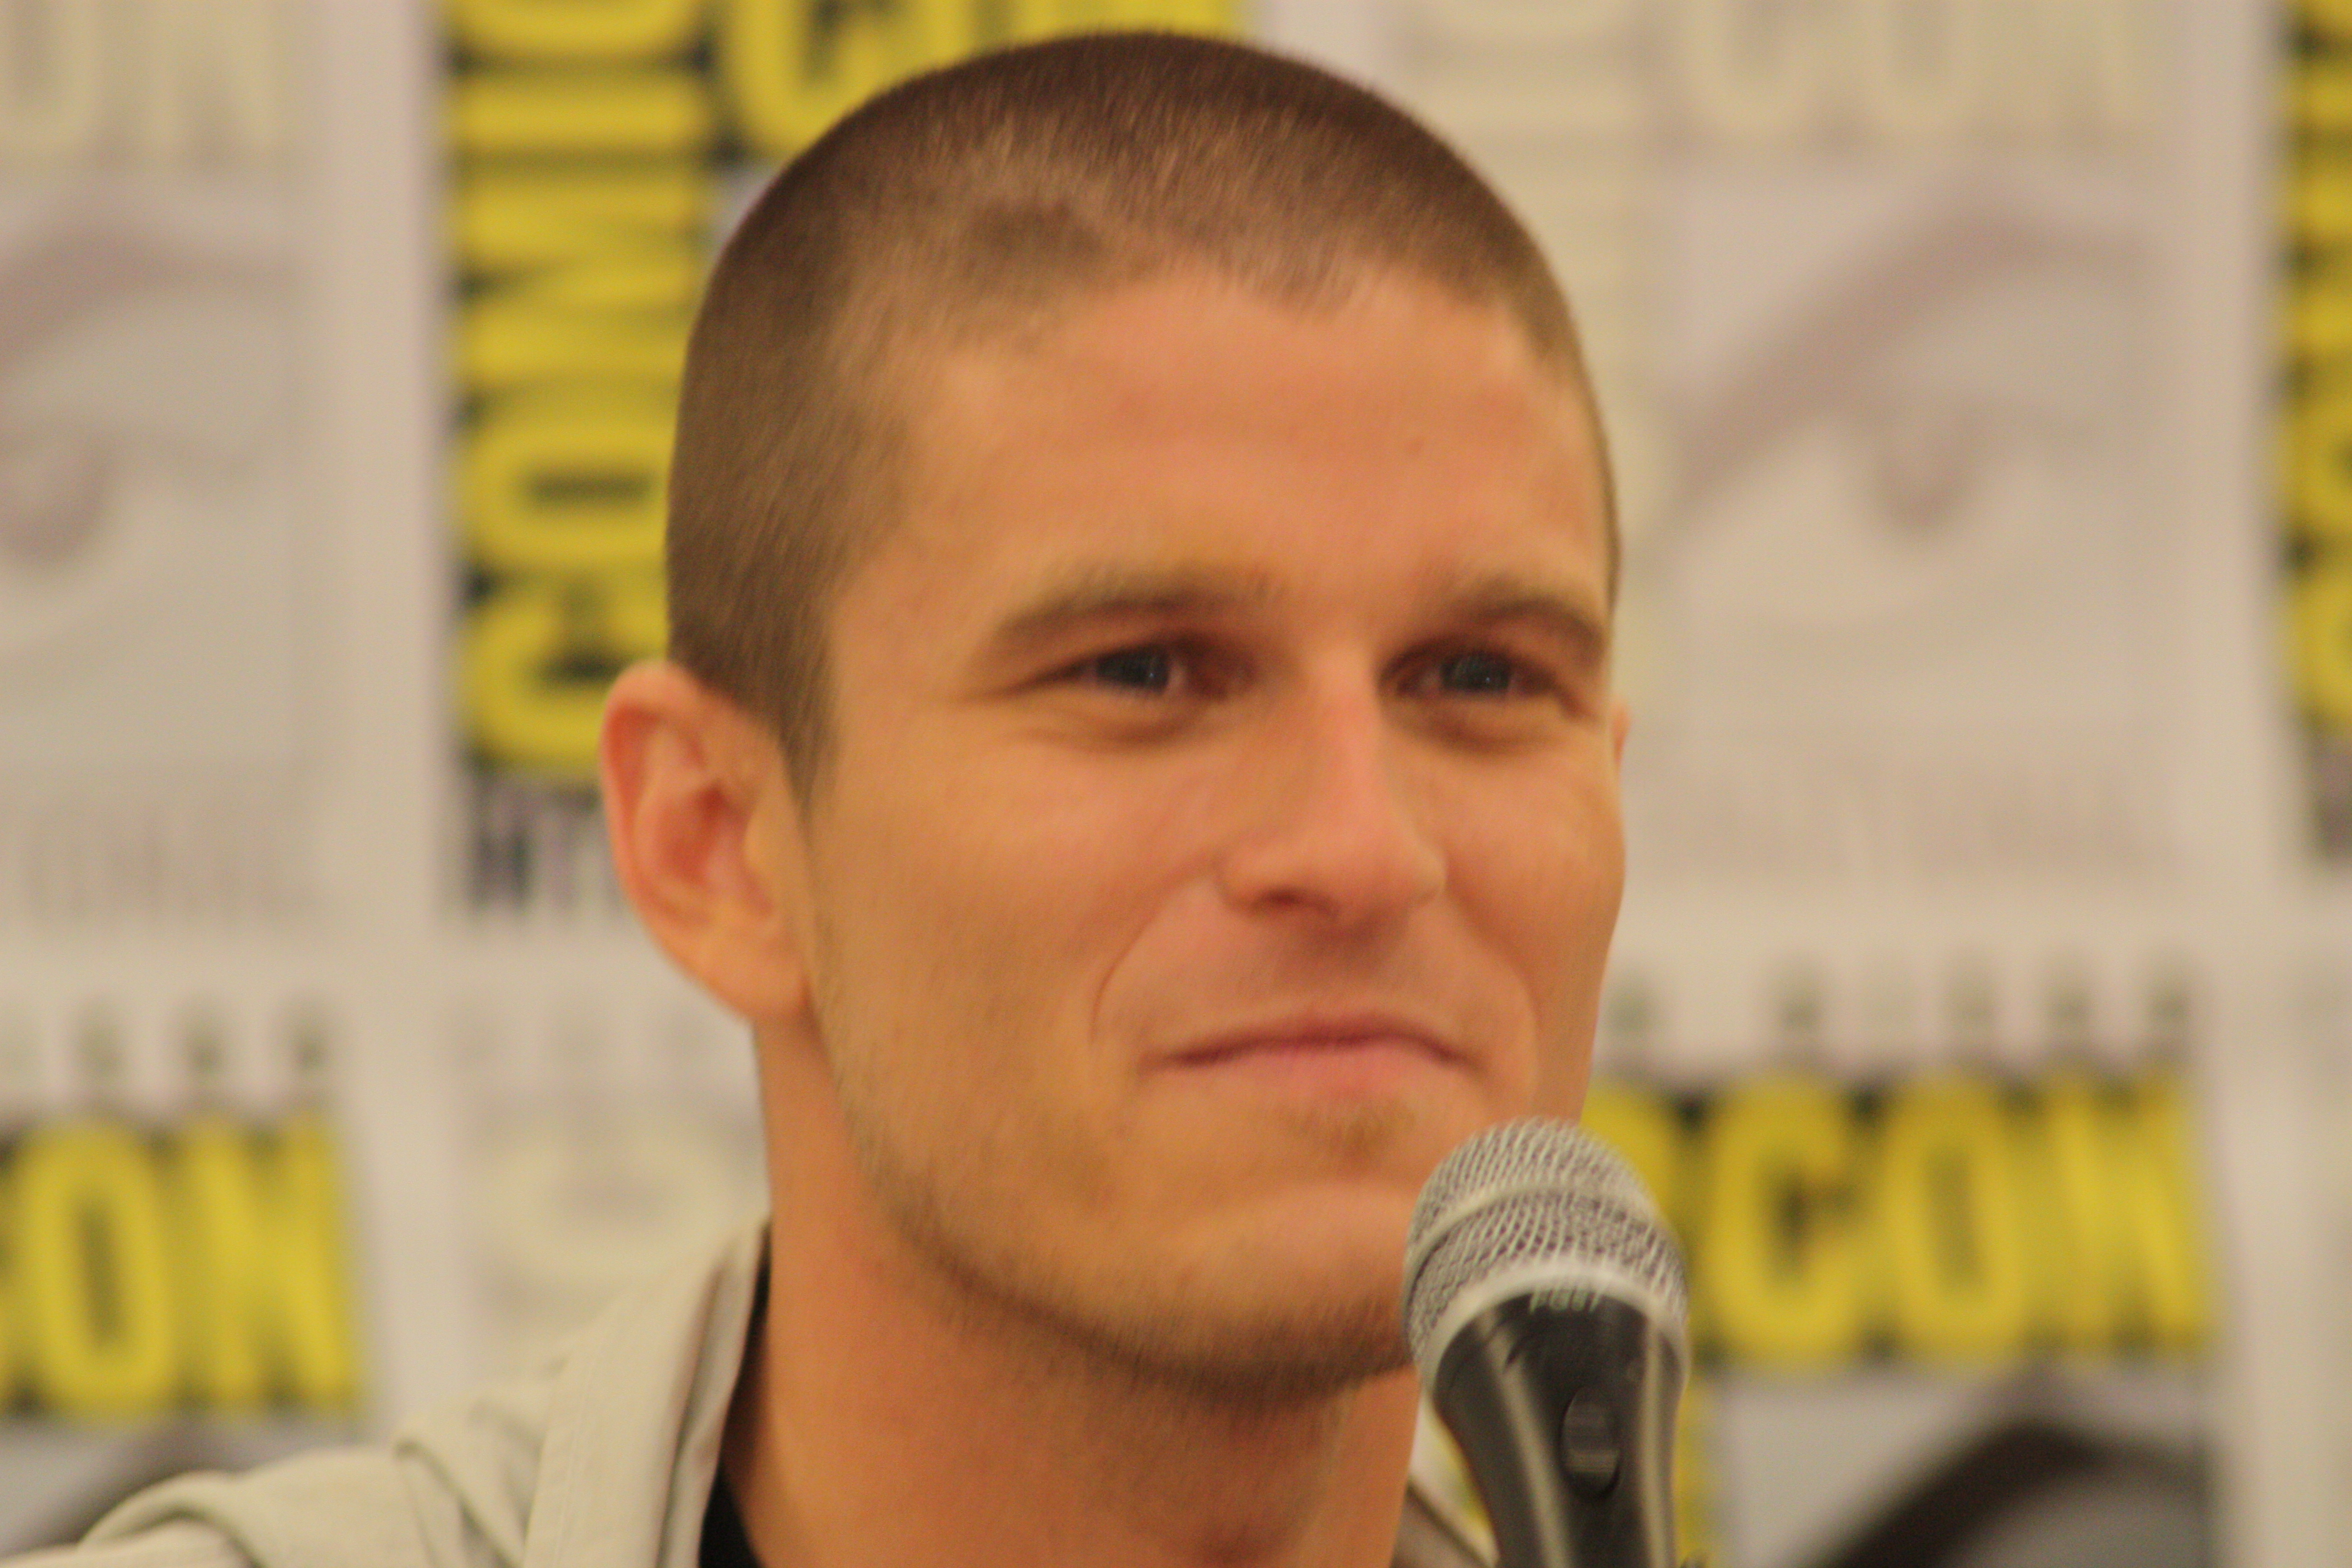 File Kevin Pereira 3757069280 Jpg Wikimedia Commons The last thing i remember of kevin was their podcast on deathsquad lasting a few. https commons wikimedia org wiki file kevin pereira 3757069280 jpg